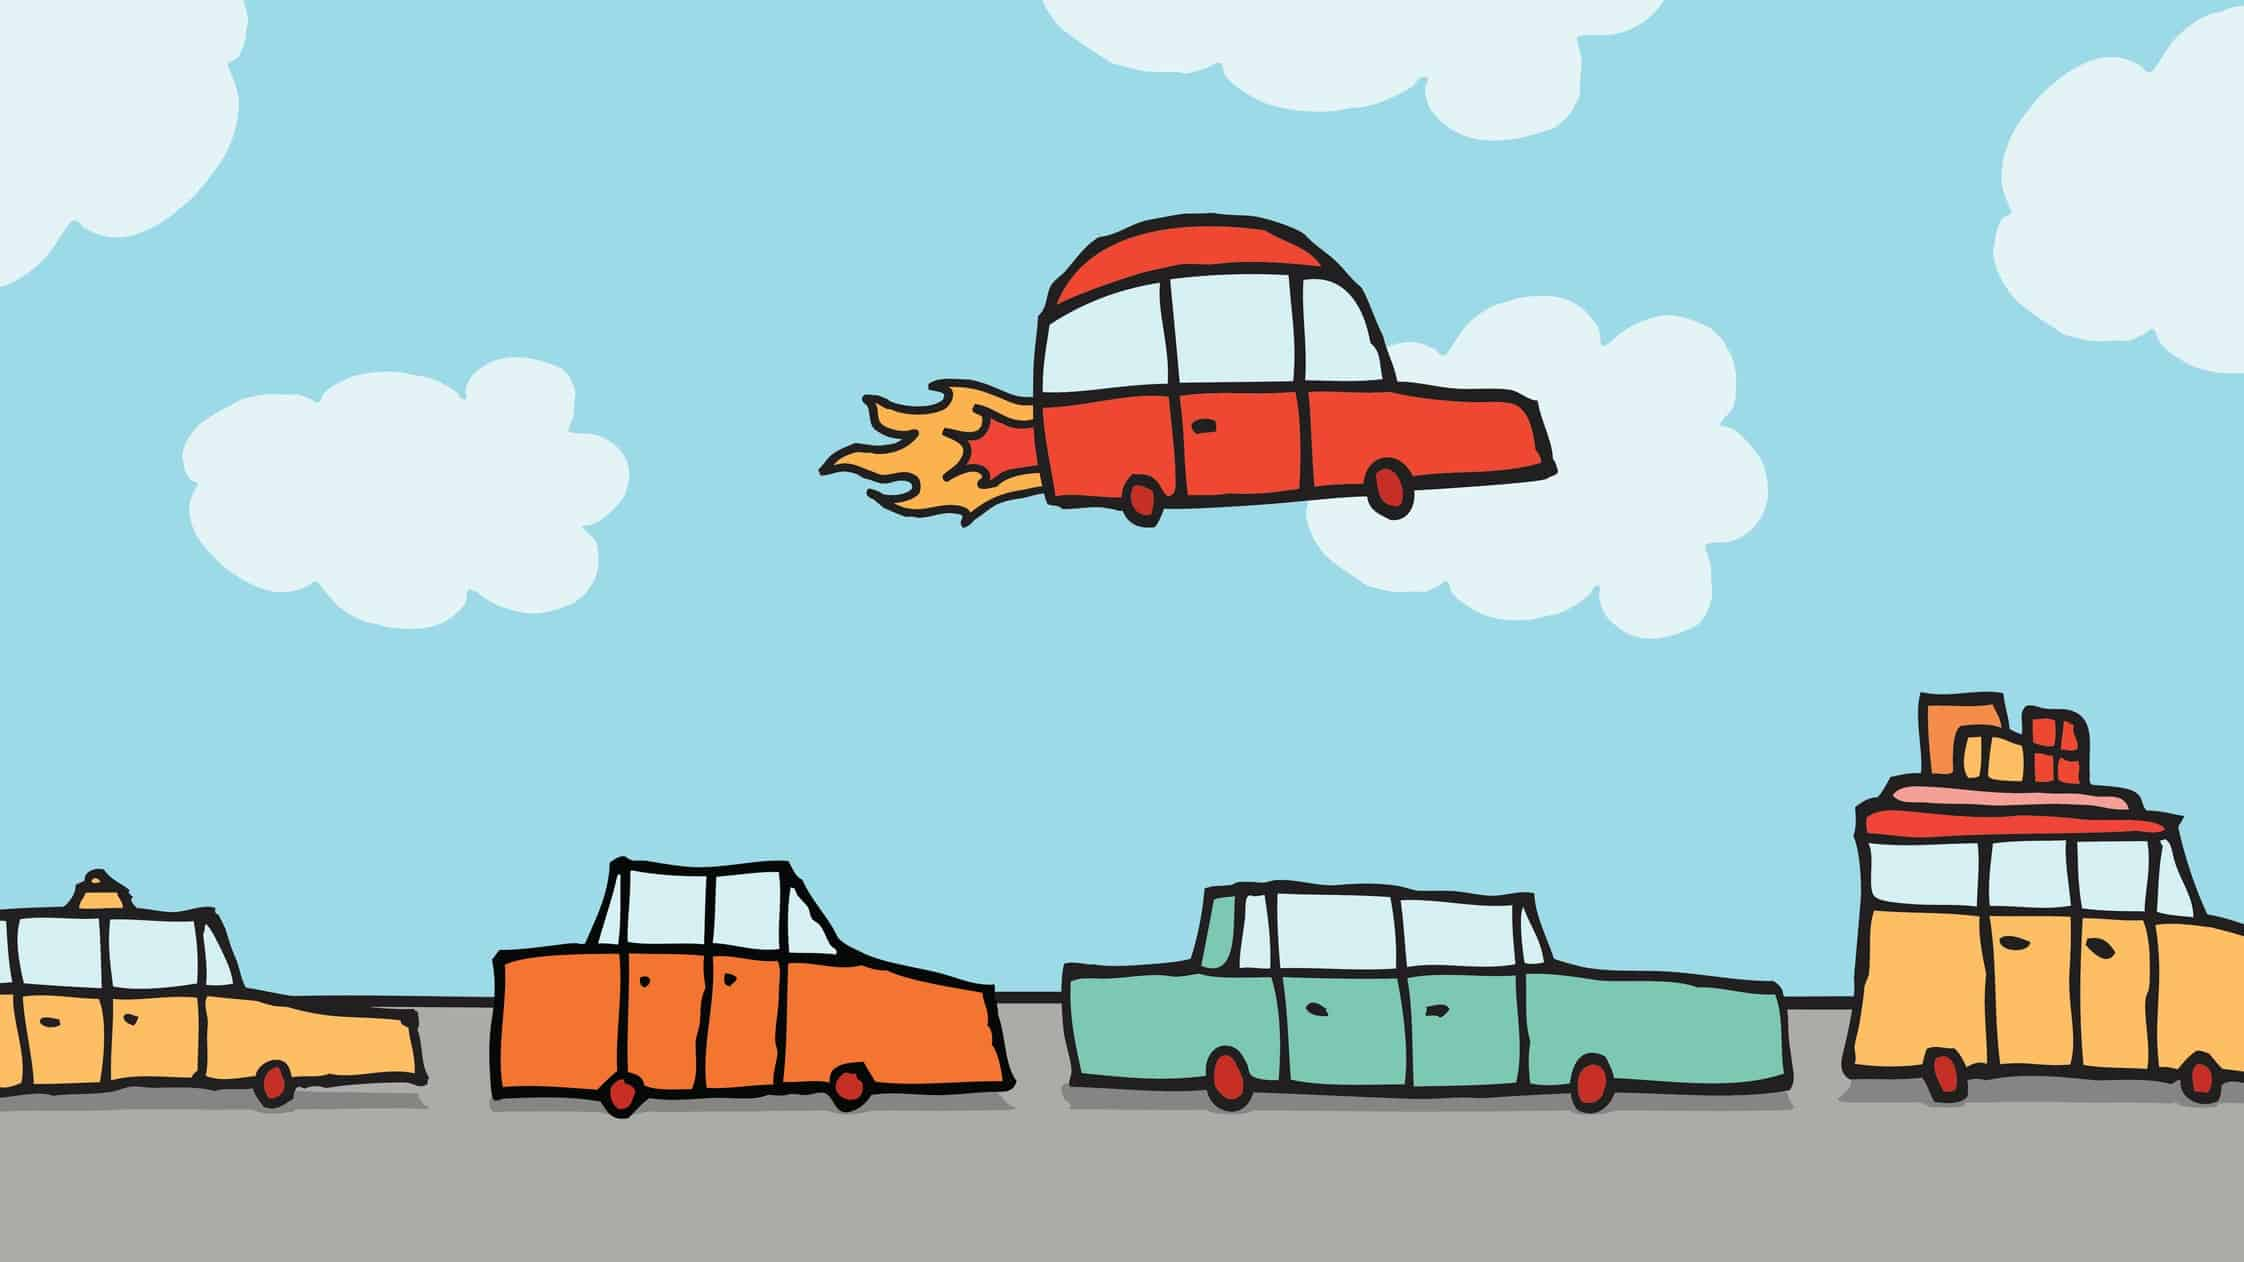 flying asx share price represented by cartoon car rocketing above all other cars on the road